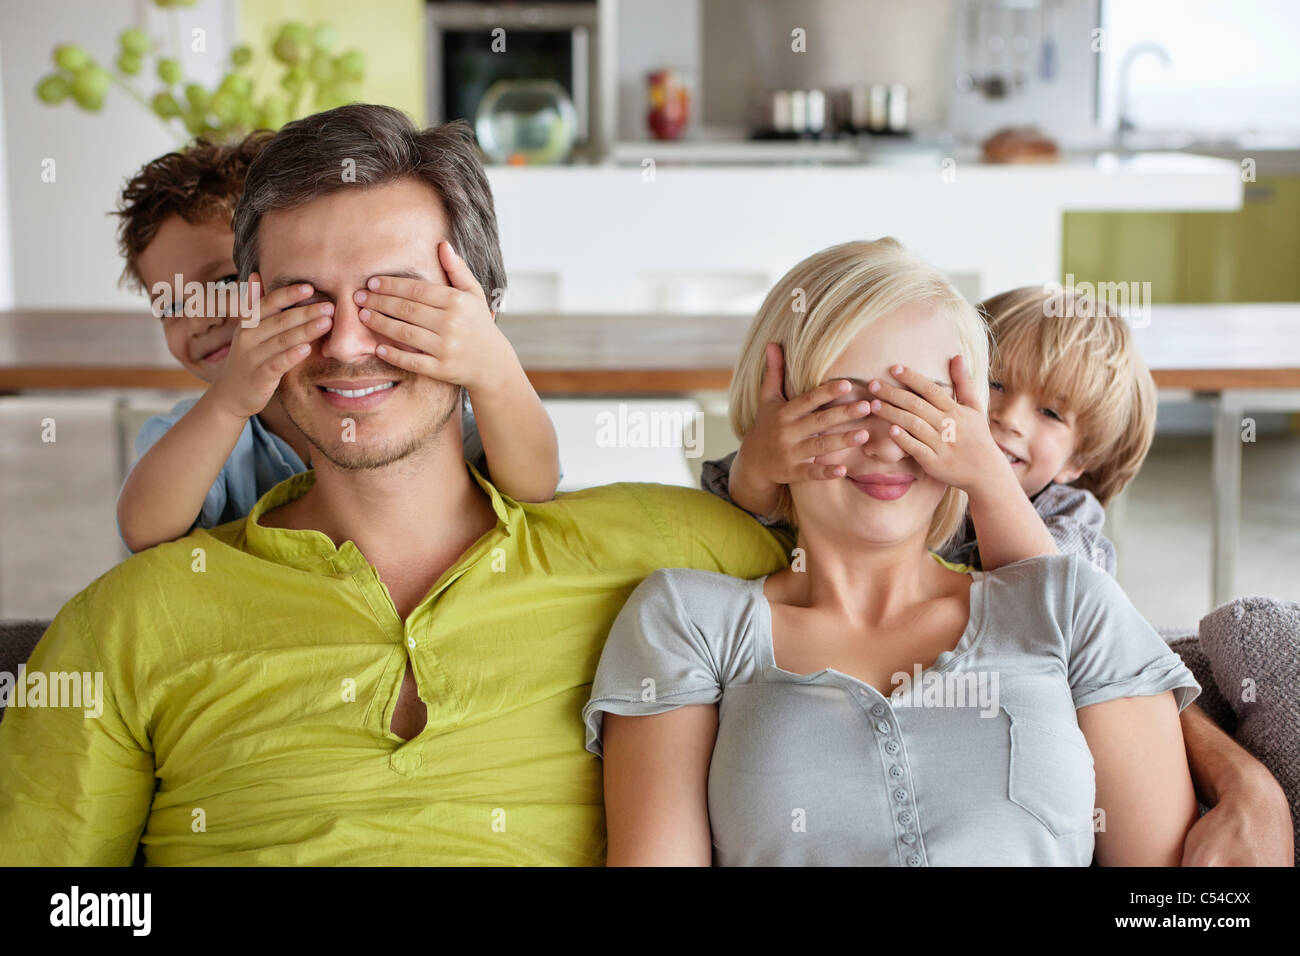 Children covering parents eyes - Stock Image